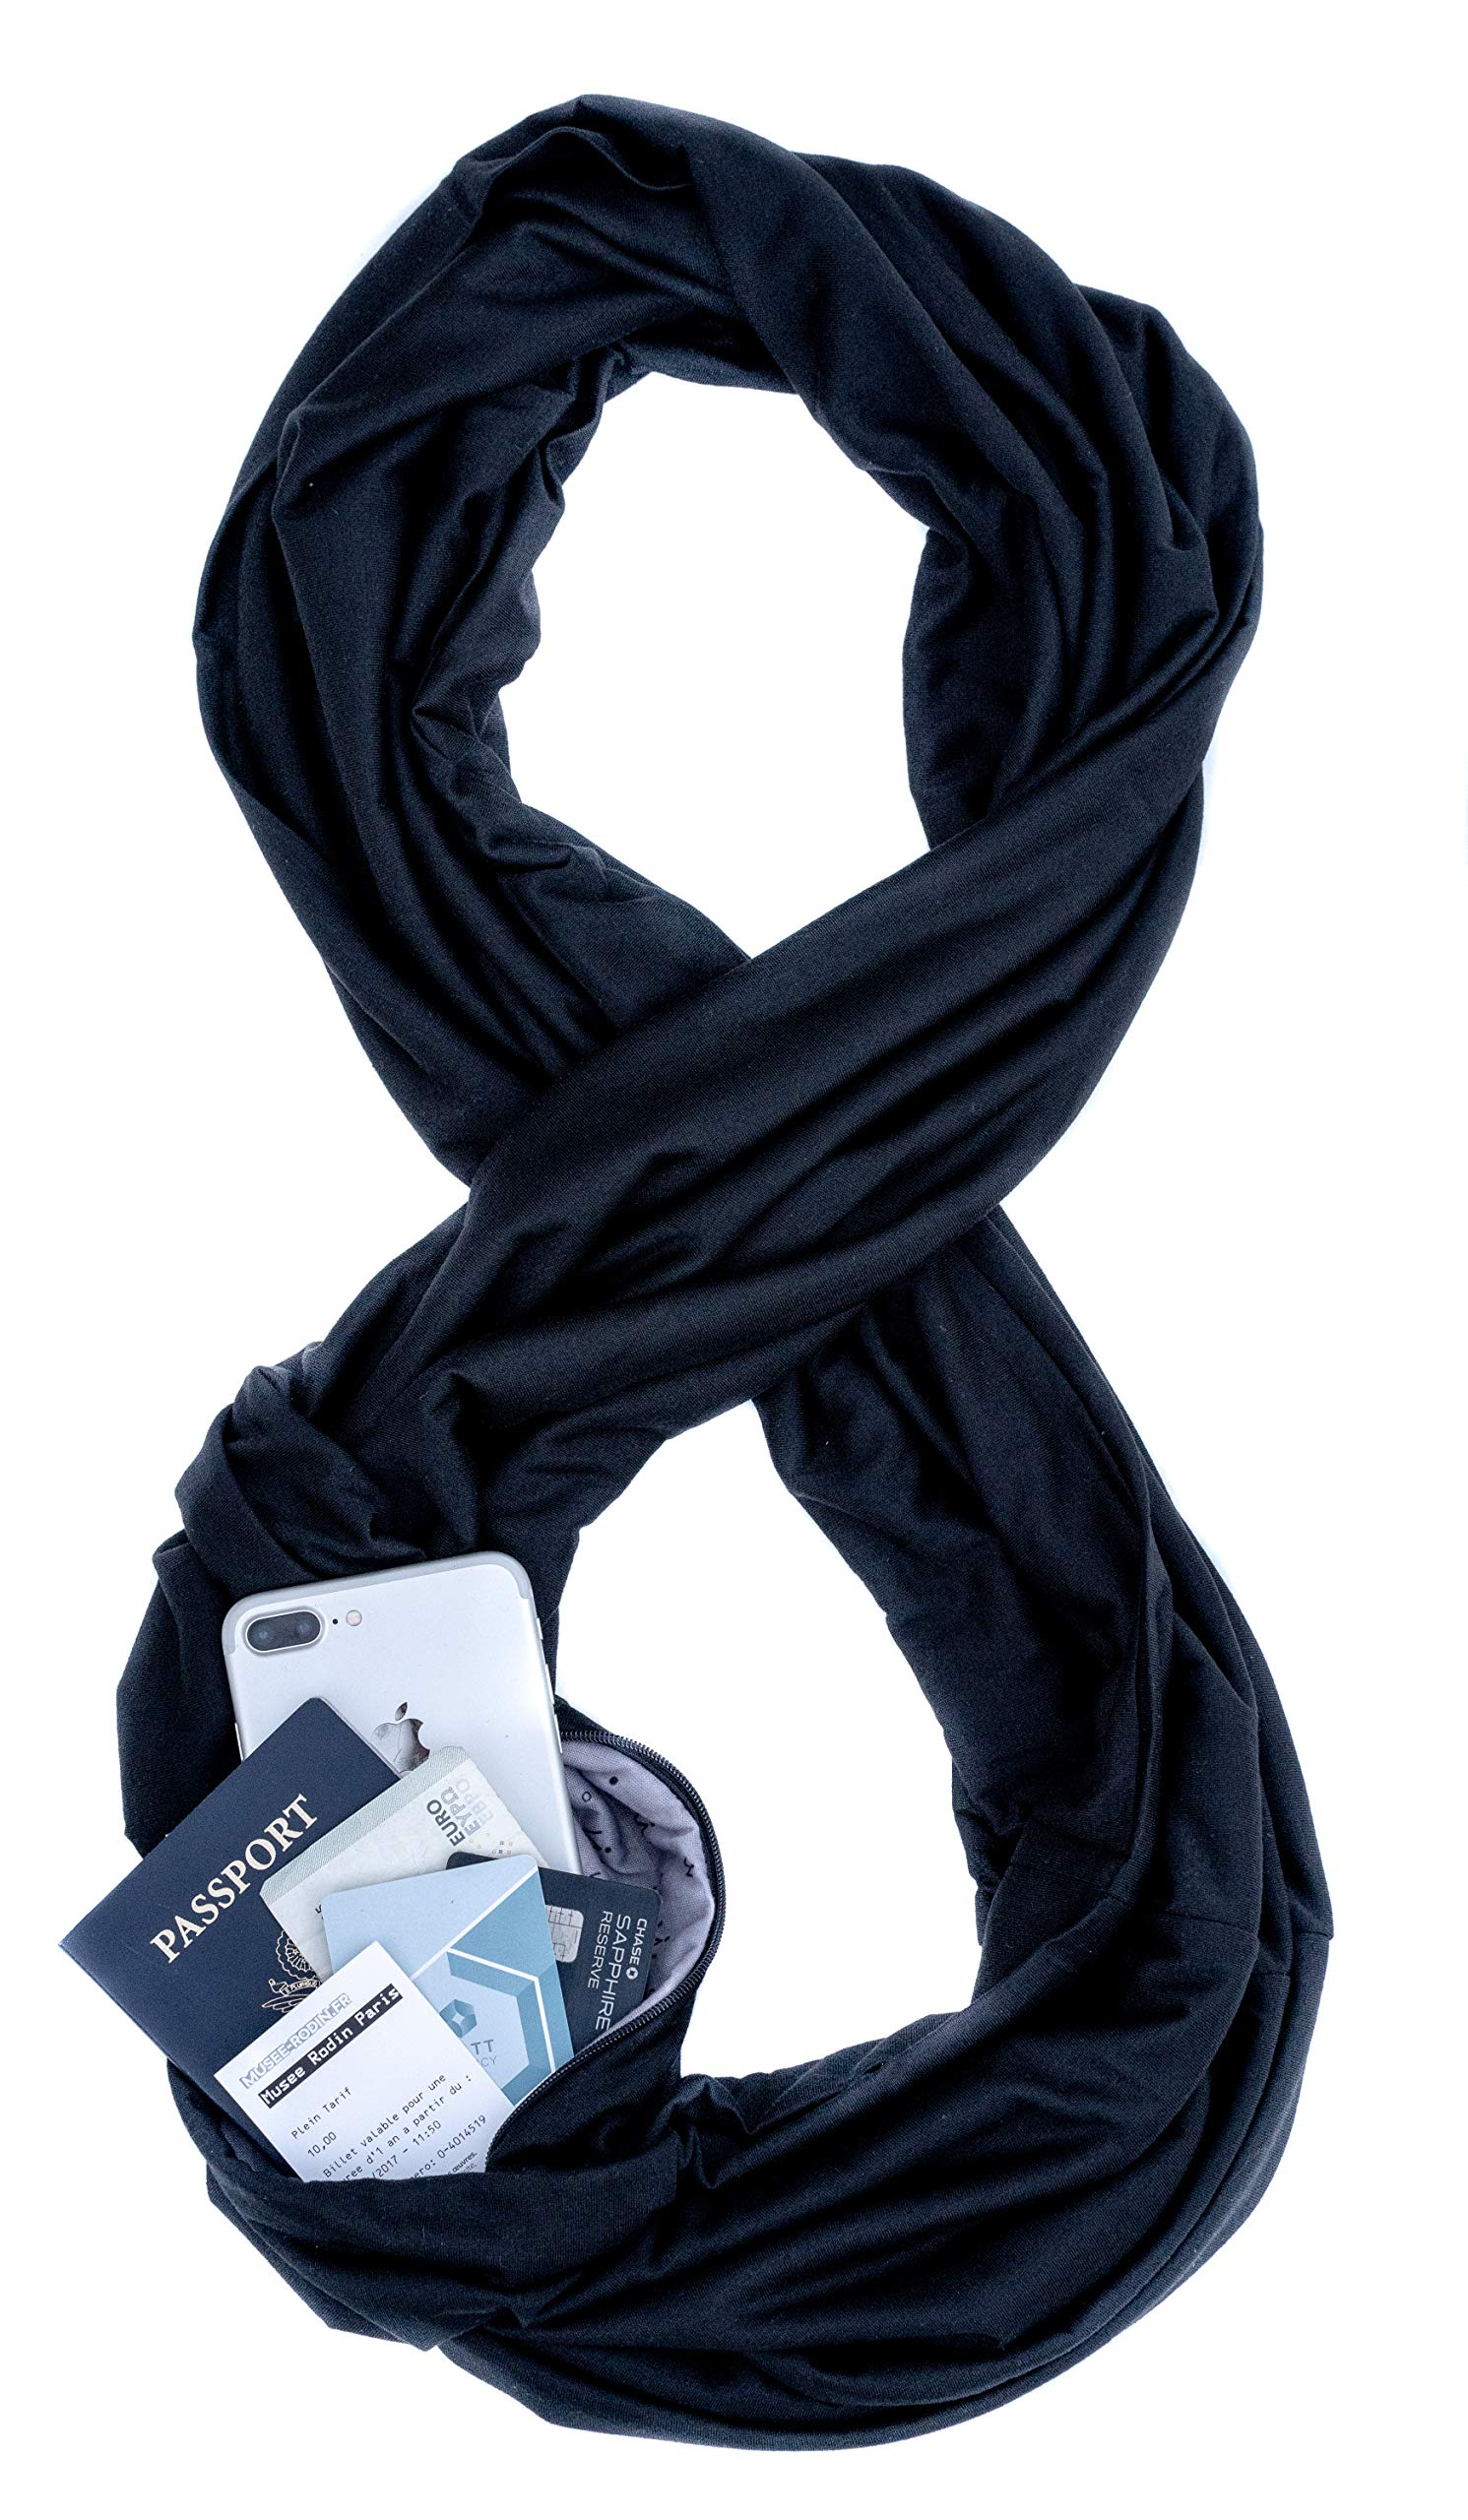 WAYPOINT GOODS Travel Scarf // Infinity Scarf with Hidden Pocket (Onyx) by WAYPOINT GOODS